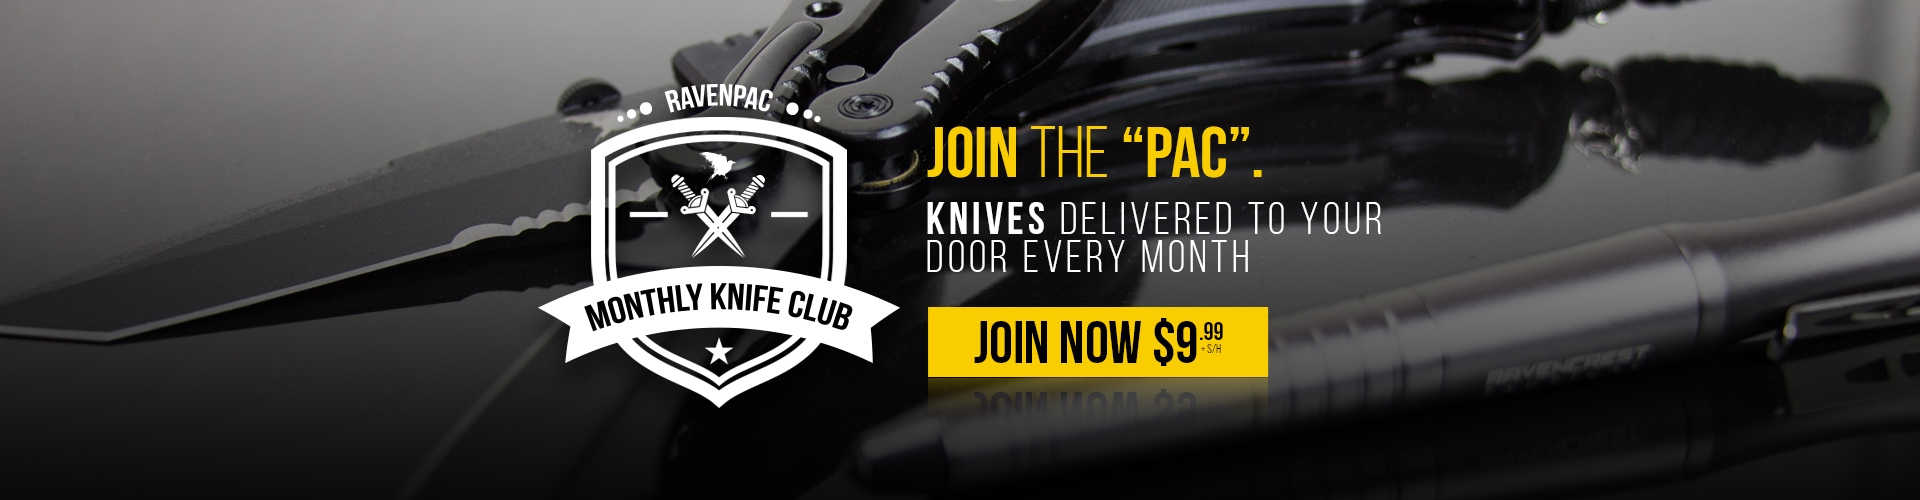 Join the Pac - RavenPac Monthly Knife Club